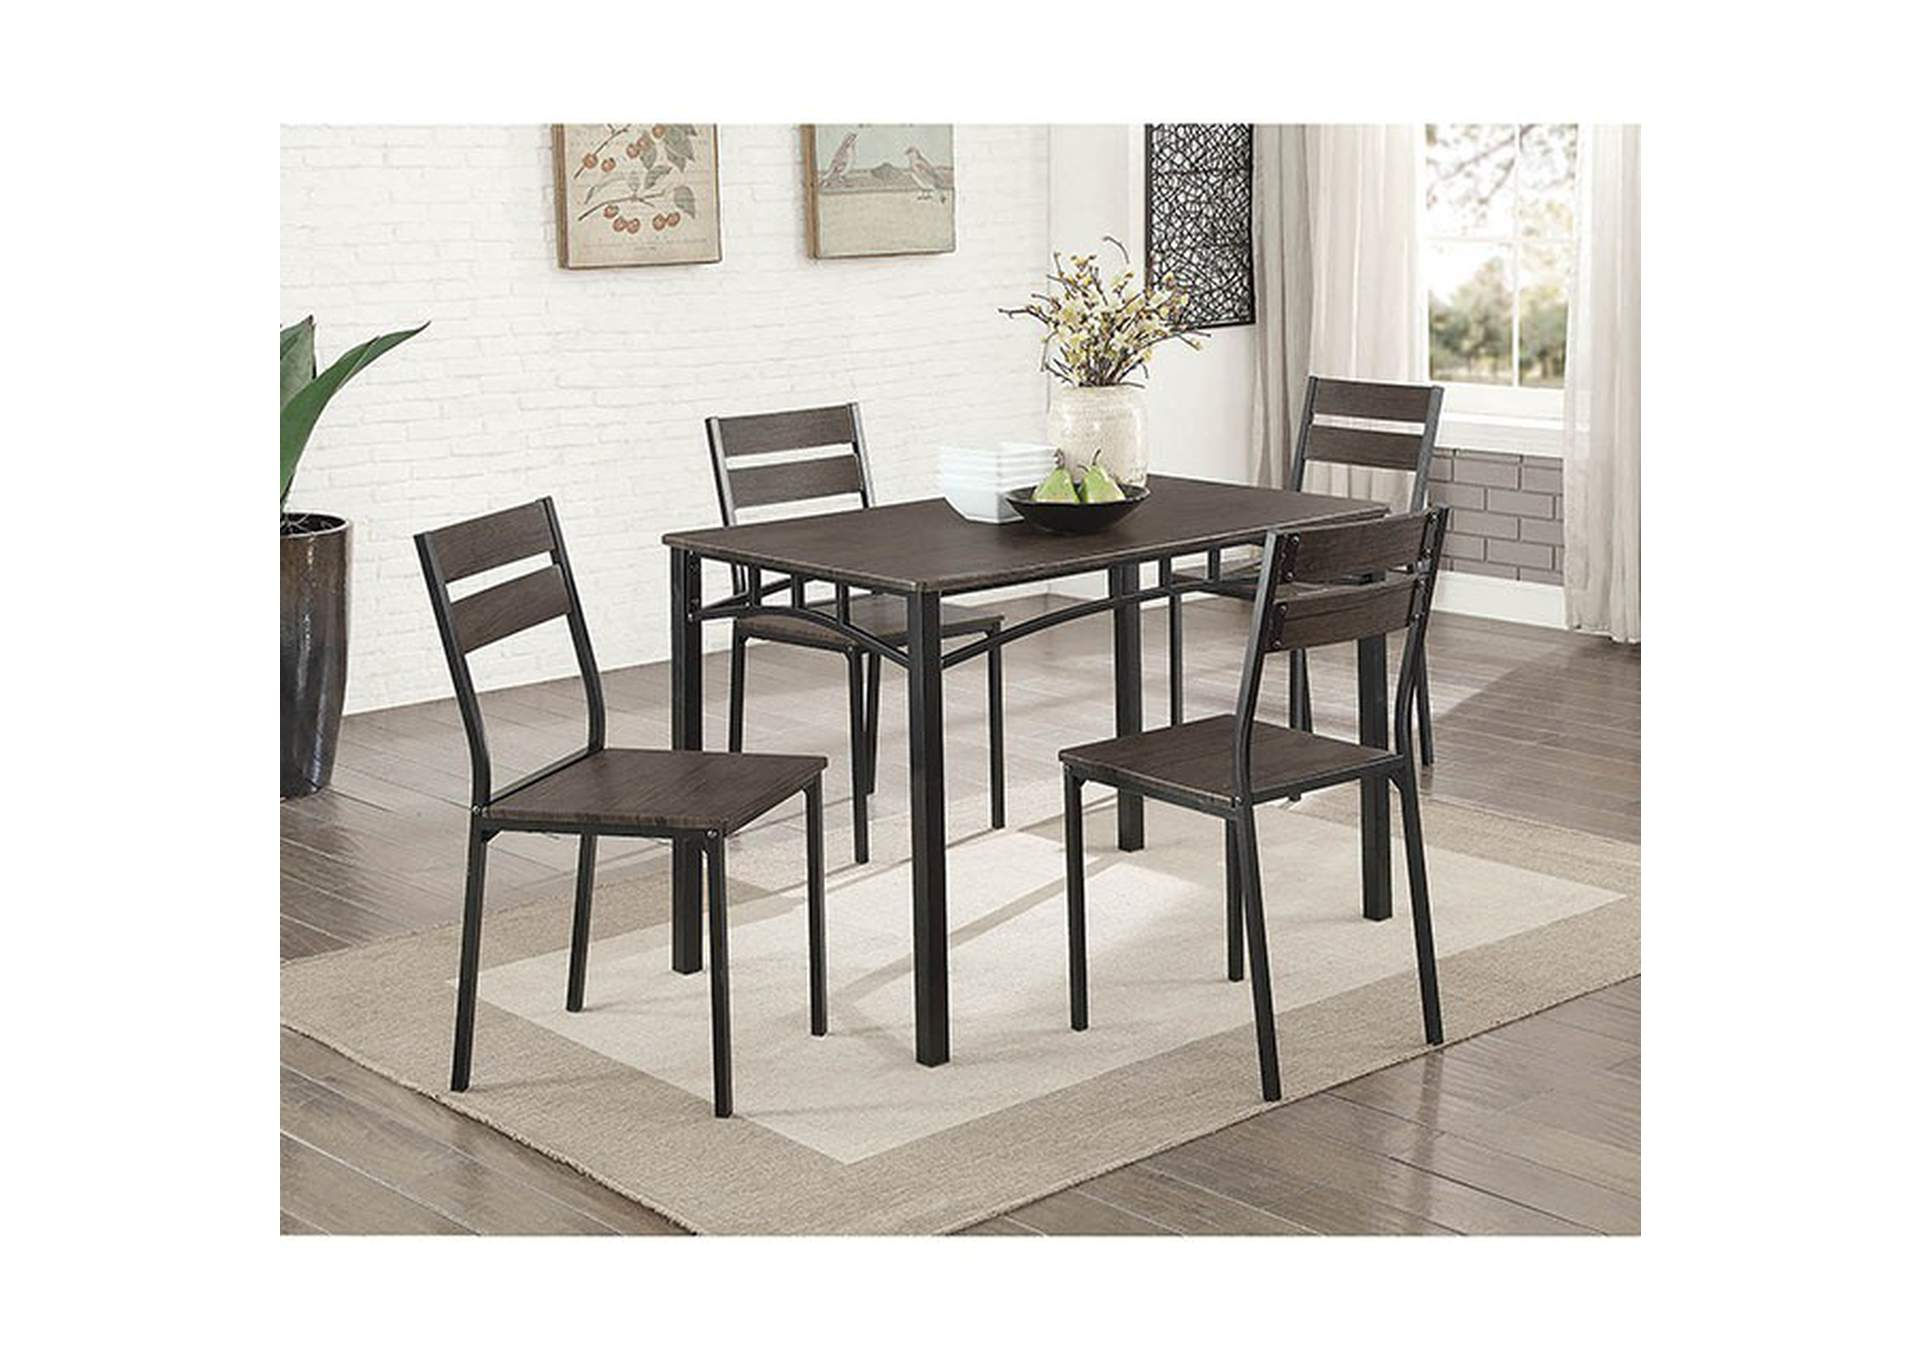 Westport Antique Brown/Black 5 Piece. Dining Set,Furniture of America